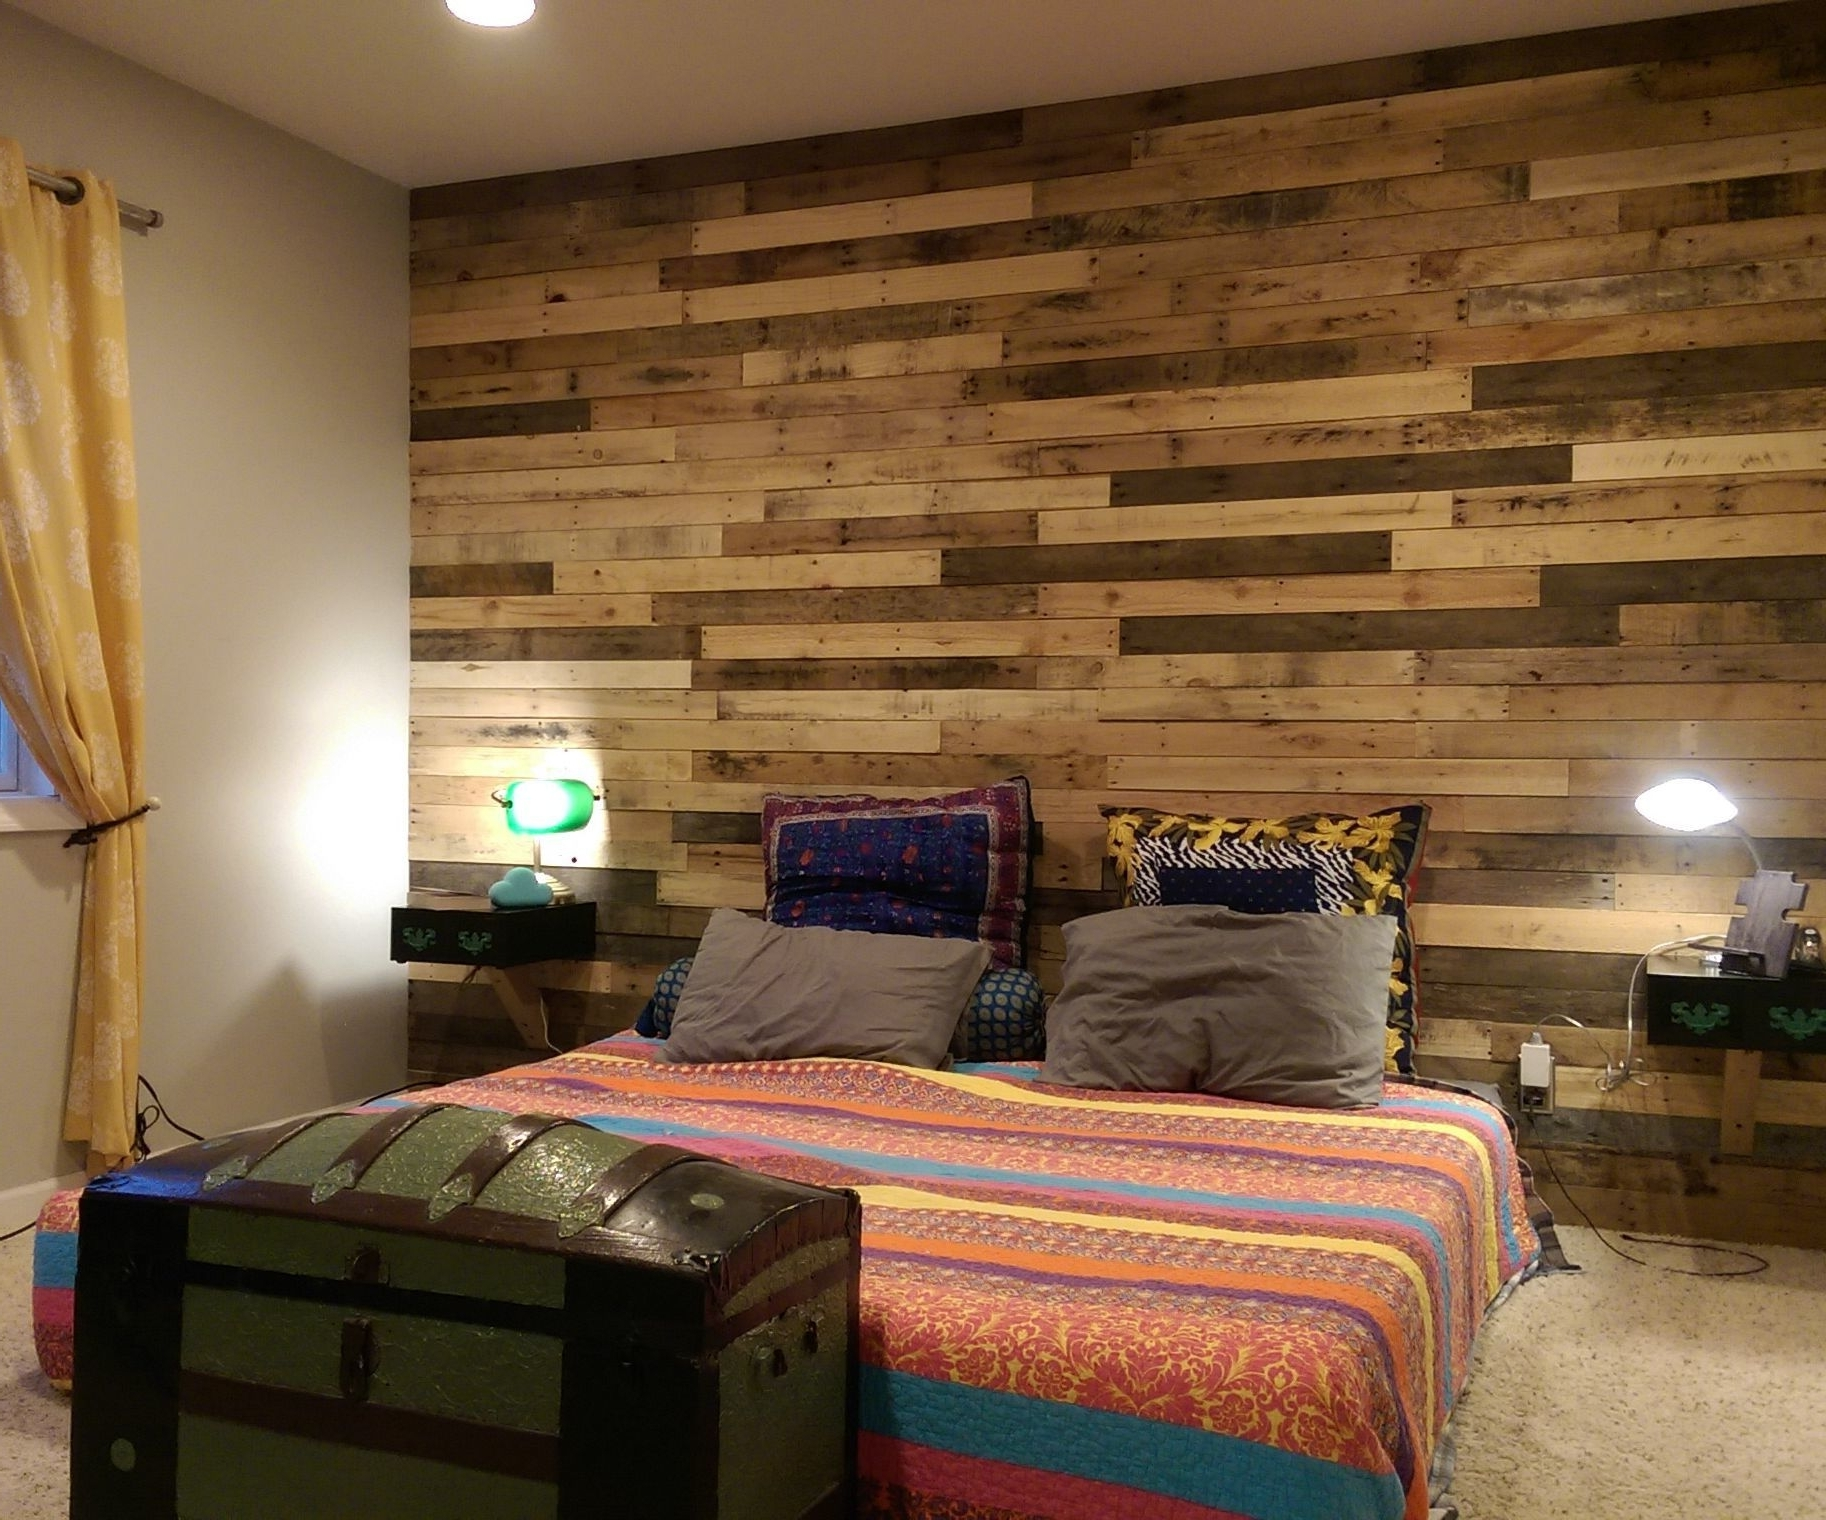 Pallet Accent Wall: 4 Steps (With Pictures) In Famous Wall Accents For Bedroom (View 9 of 15)